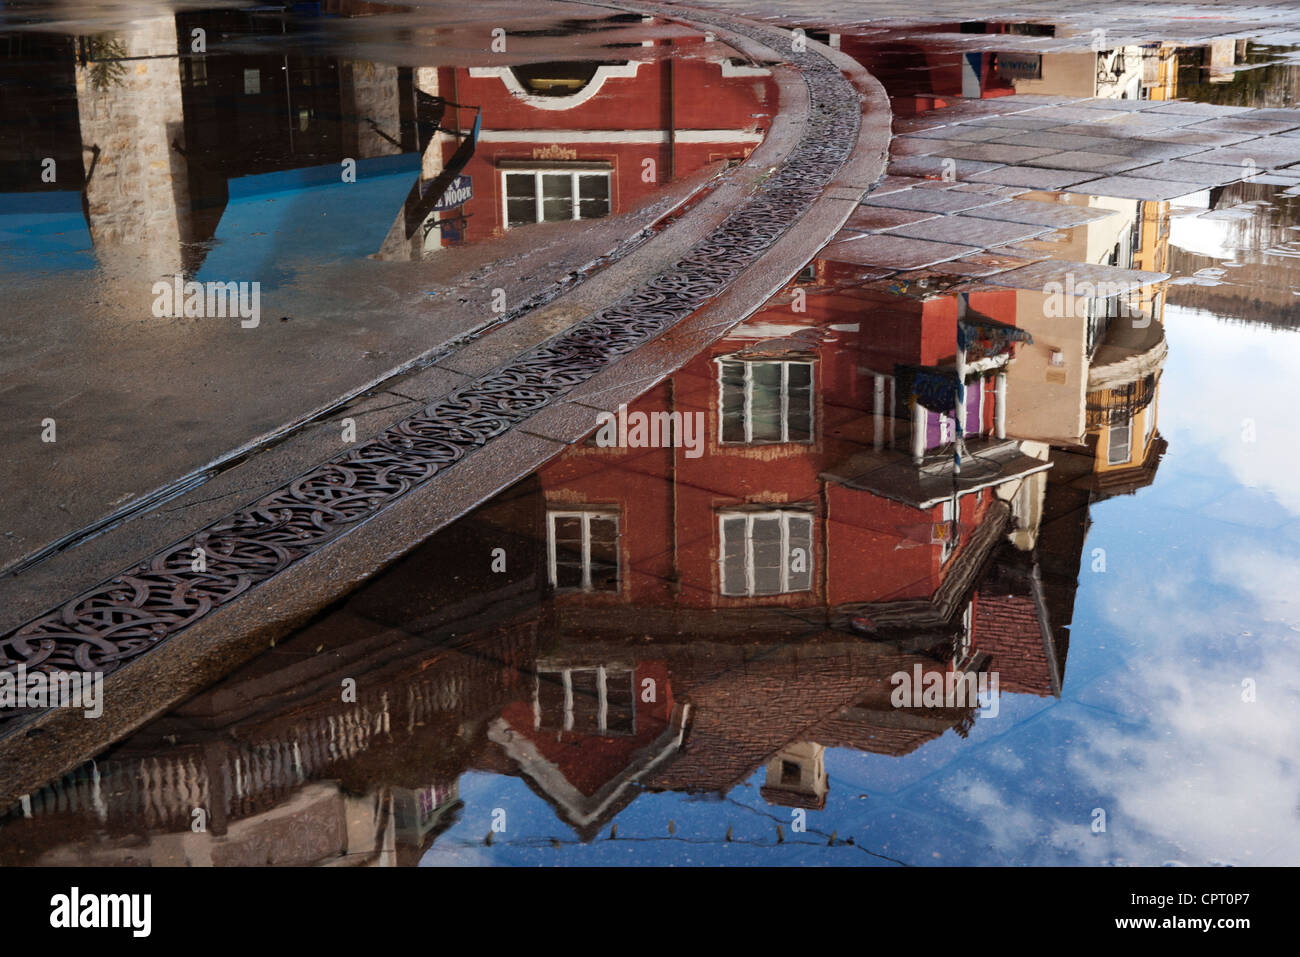 Street Reflections in Lionshead Village - Vail, Colorado USA - Stock Image